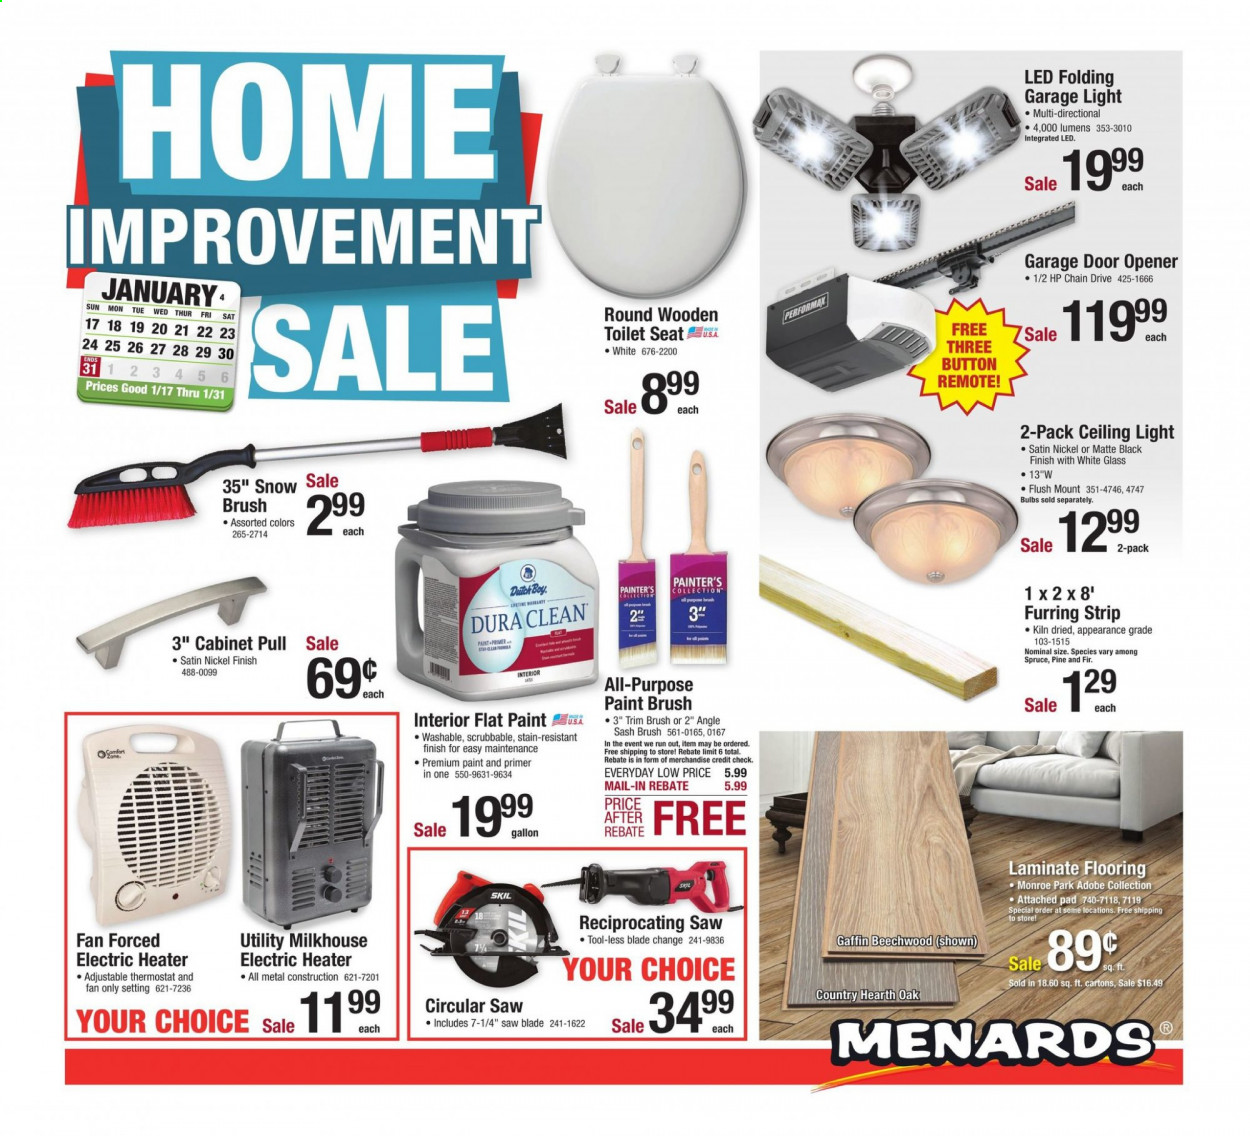 Menards Flyer - 01.17.2021 - 01.31.2021 - Sales products - toilet, bulb, satin, tools, electric heater, heater, flooring, door, circular saw, saw, brush, pine, fan. Page 1.